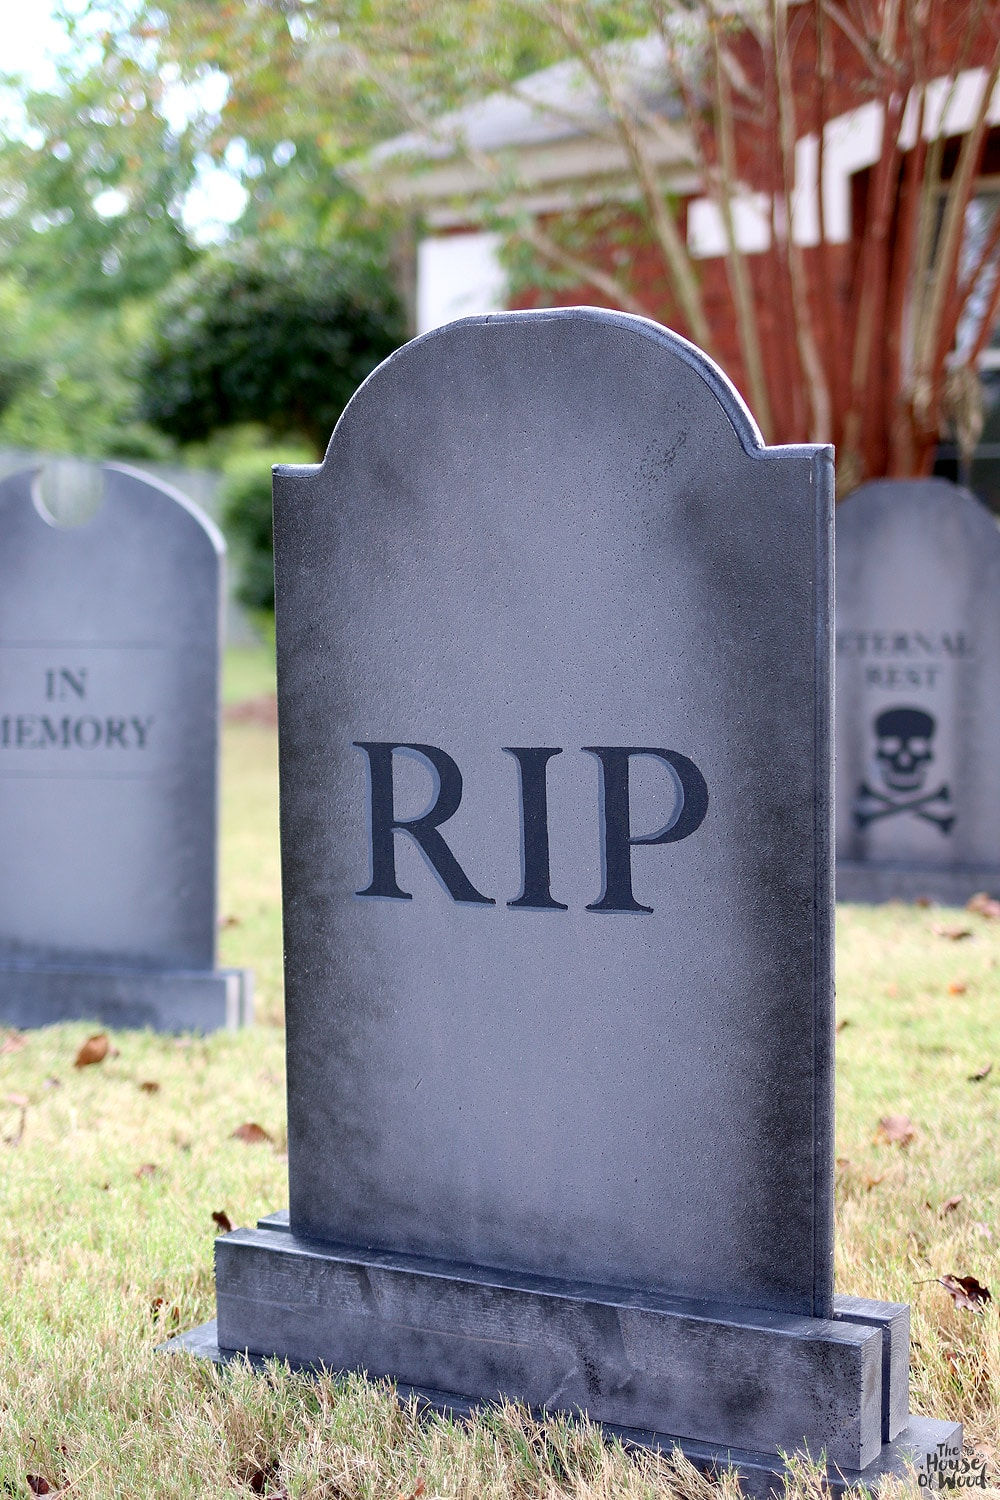 DIY Halloween Lawn Gravestones - The House of Wood